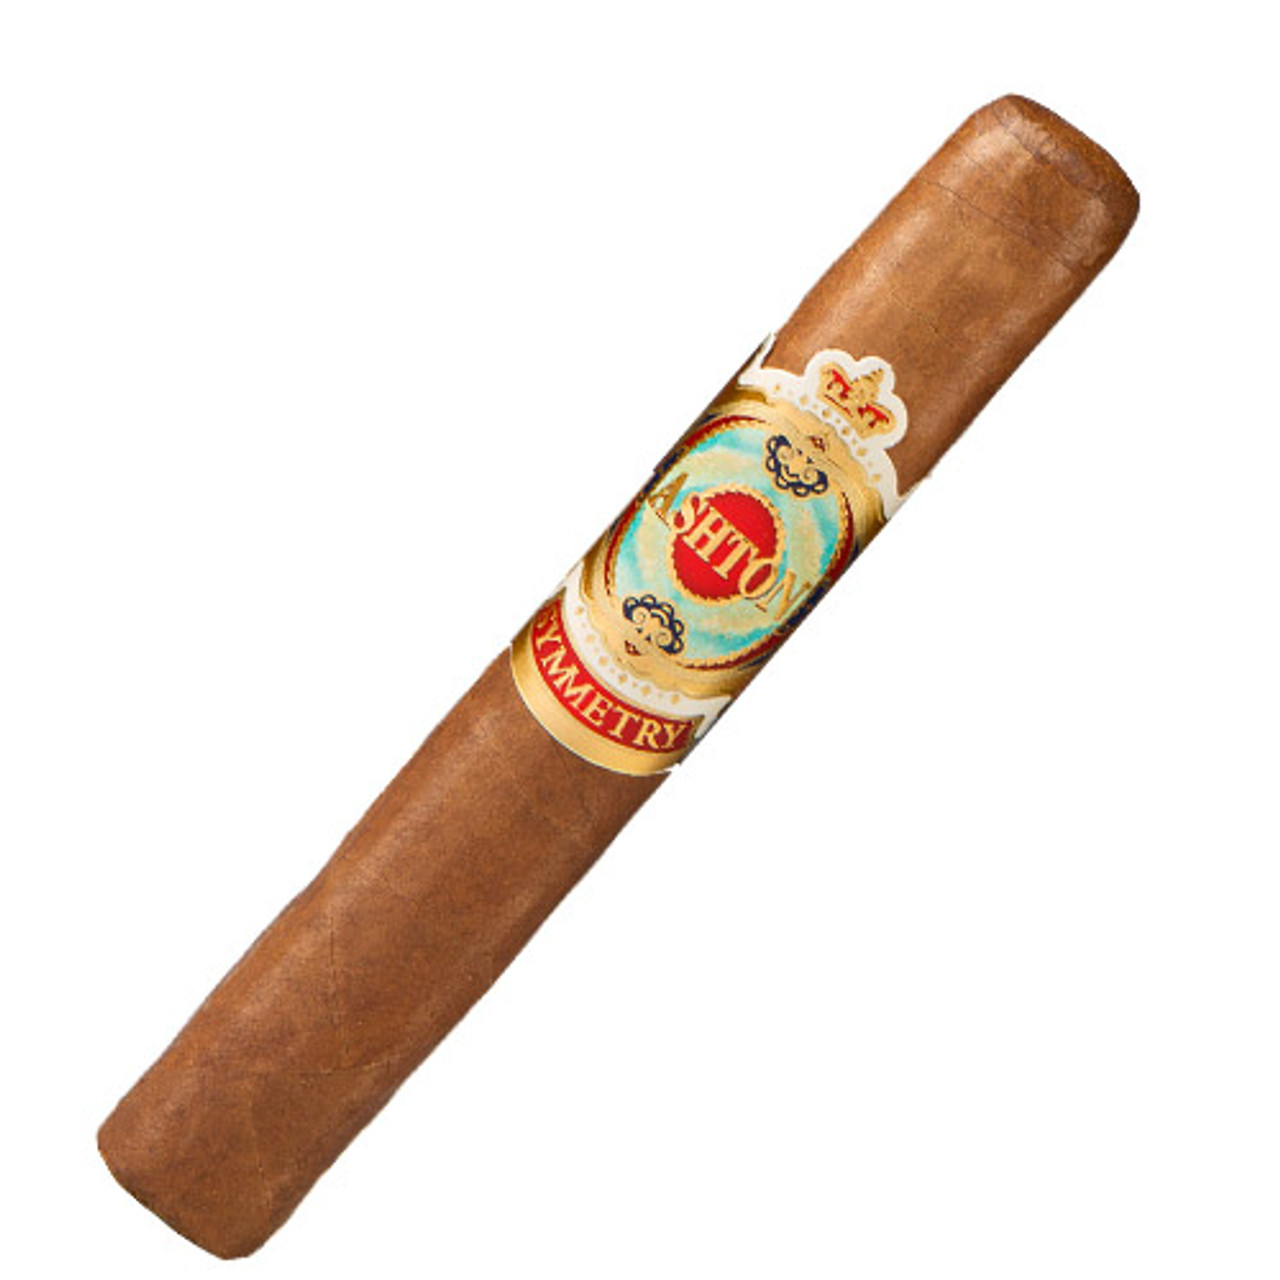 Ashton Symmetry Robusto Cigars - 5 x 50 (Cedar Chest of 25)